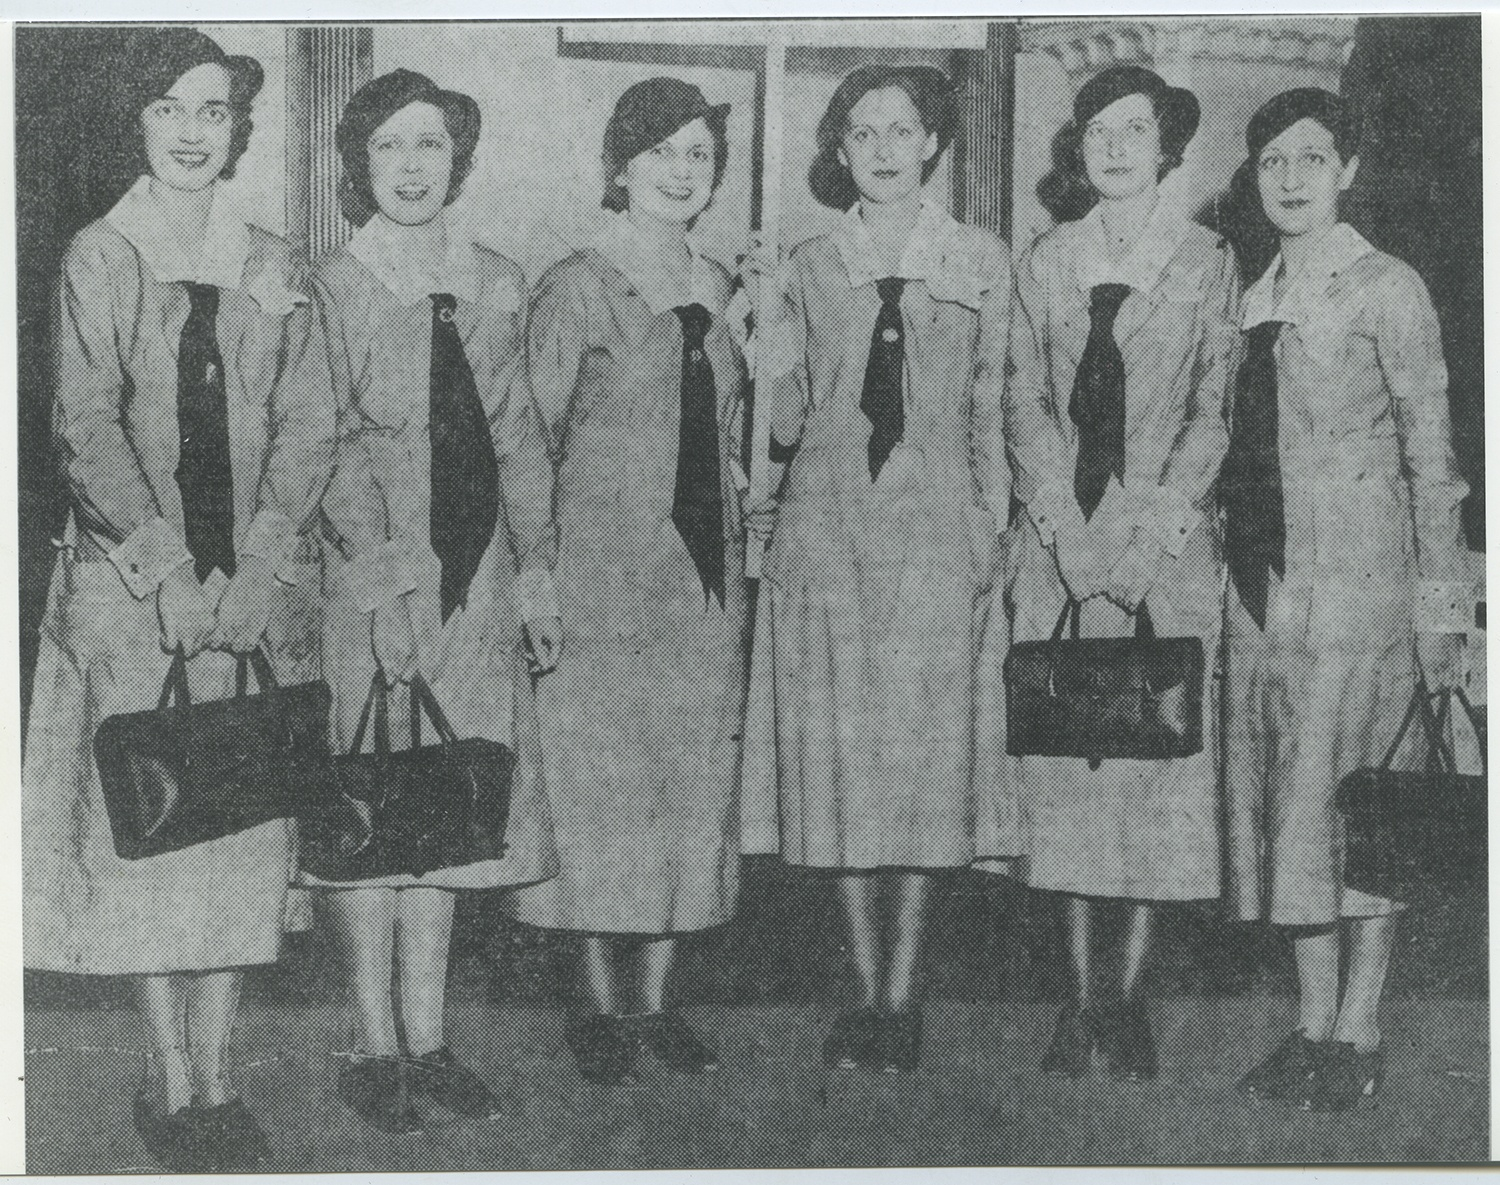 Anne M. Nixon (3rd from left) pictured with other members of Pittsburgh's Public Health Nurse Corps, 1930s. Gift of Anne M. Nixon, 1995.0049, Heinz History Center Museum Collections.